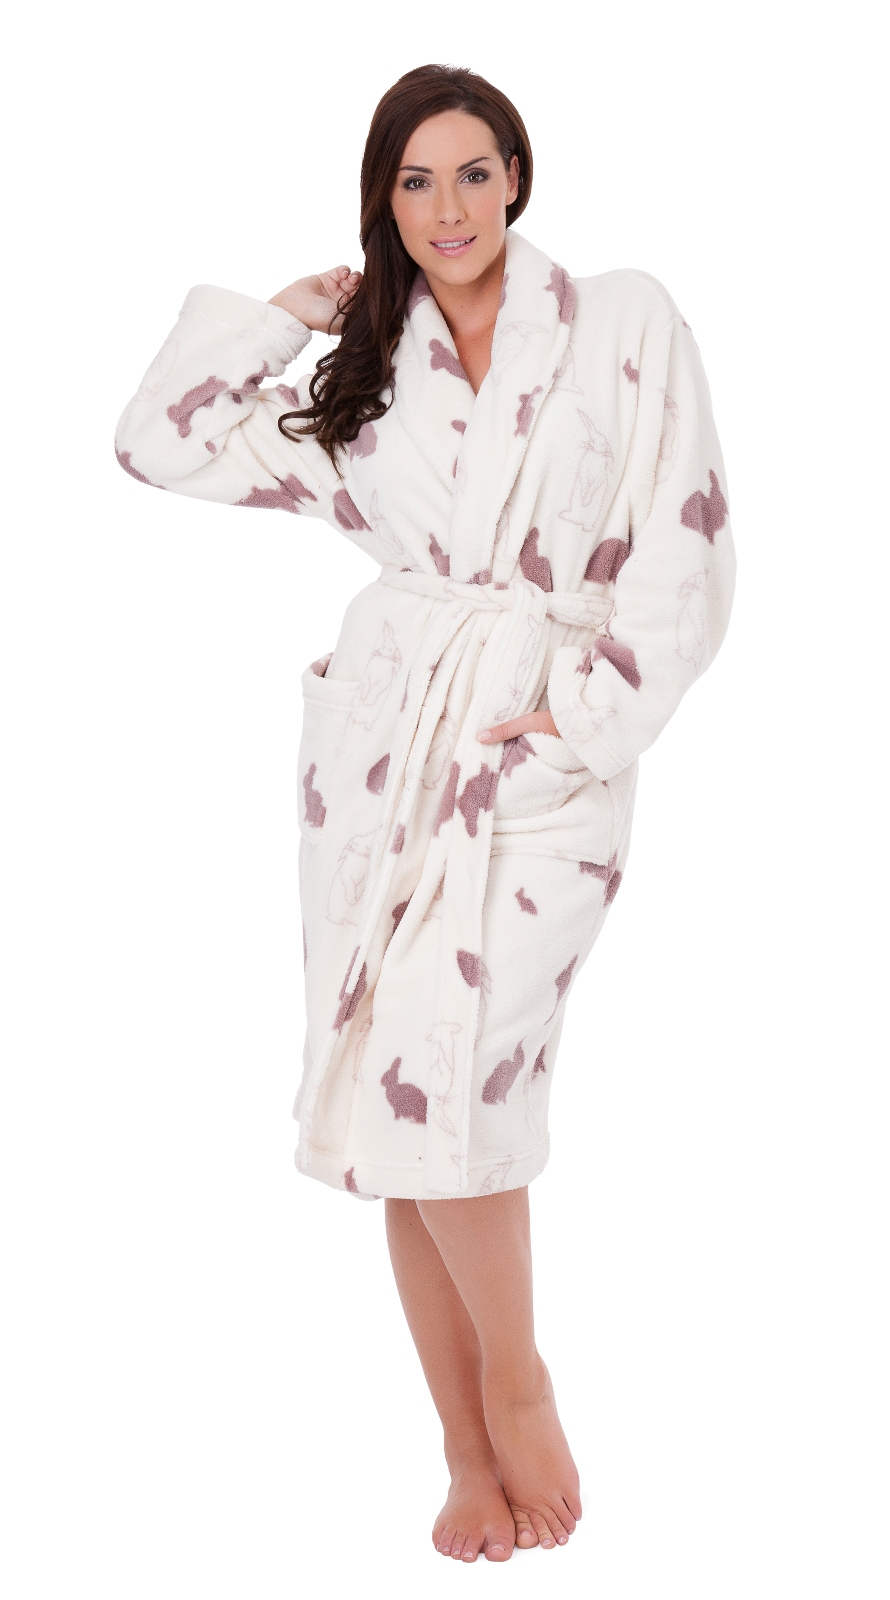 Shop boohoo's gorgeous collection of ladies' dressing gowns, perfect for lounging at home or Team Bride!